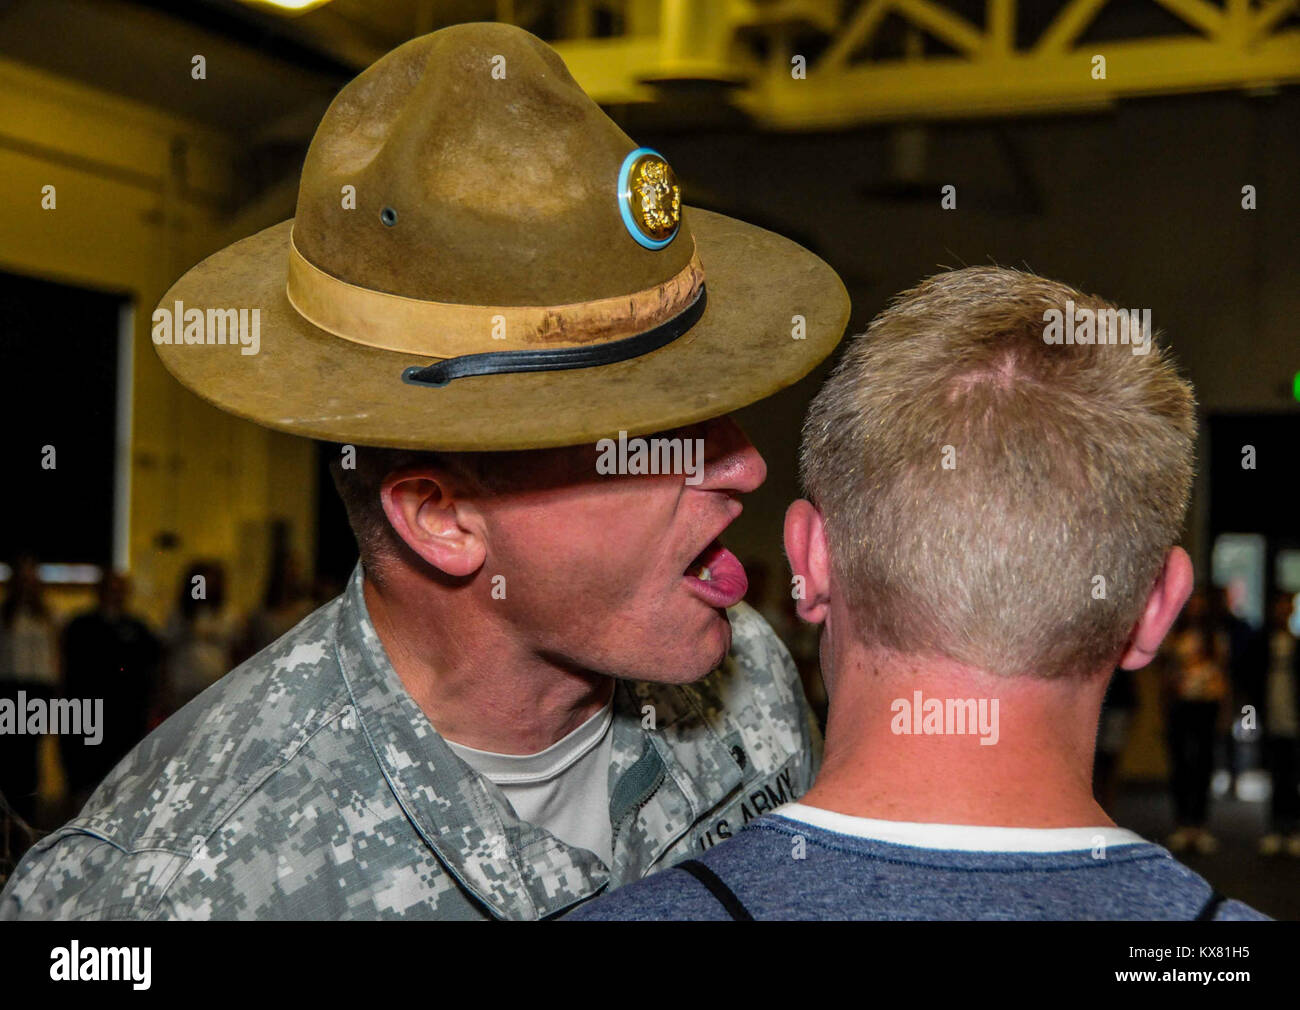 Drill Sergeant Stock Photos & Drill Sergeant Stock Images - Alamy